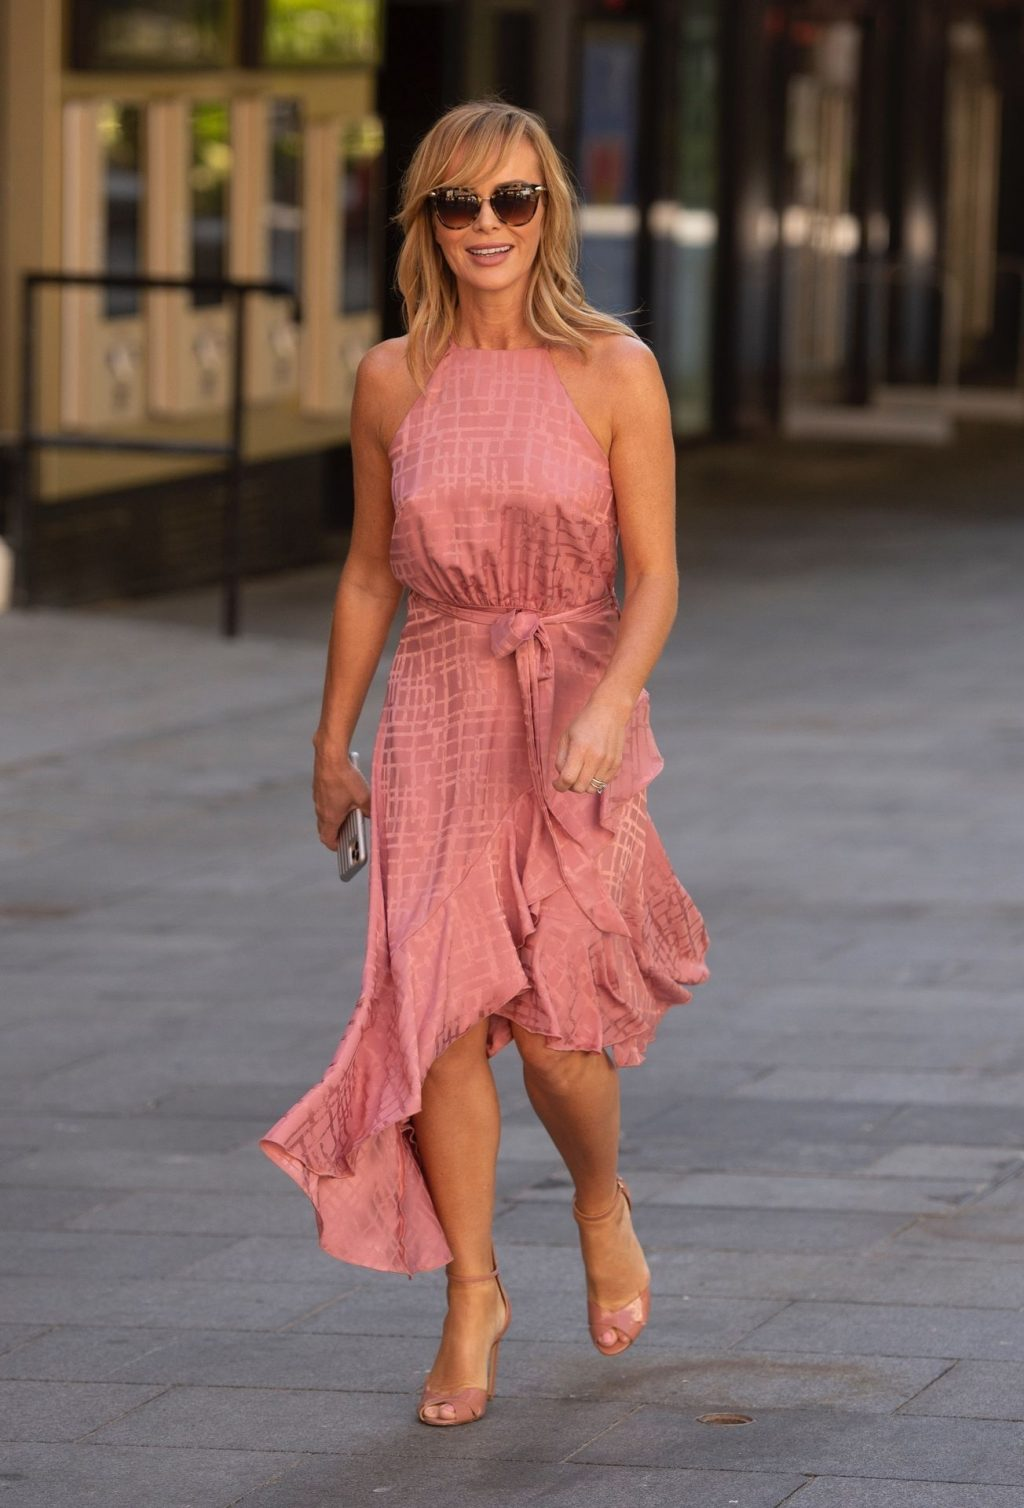 Amanda Holden Is Pictured While Leaving the Heart Radio Studios (43 Photos)